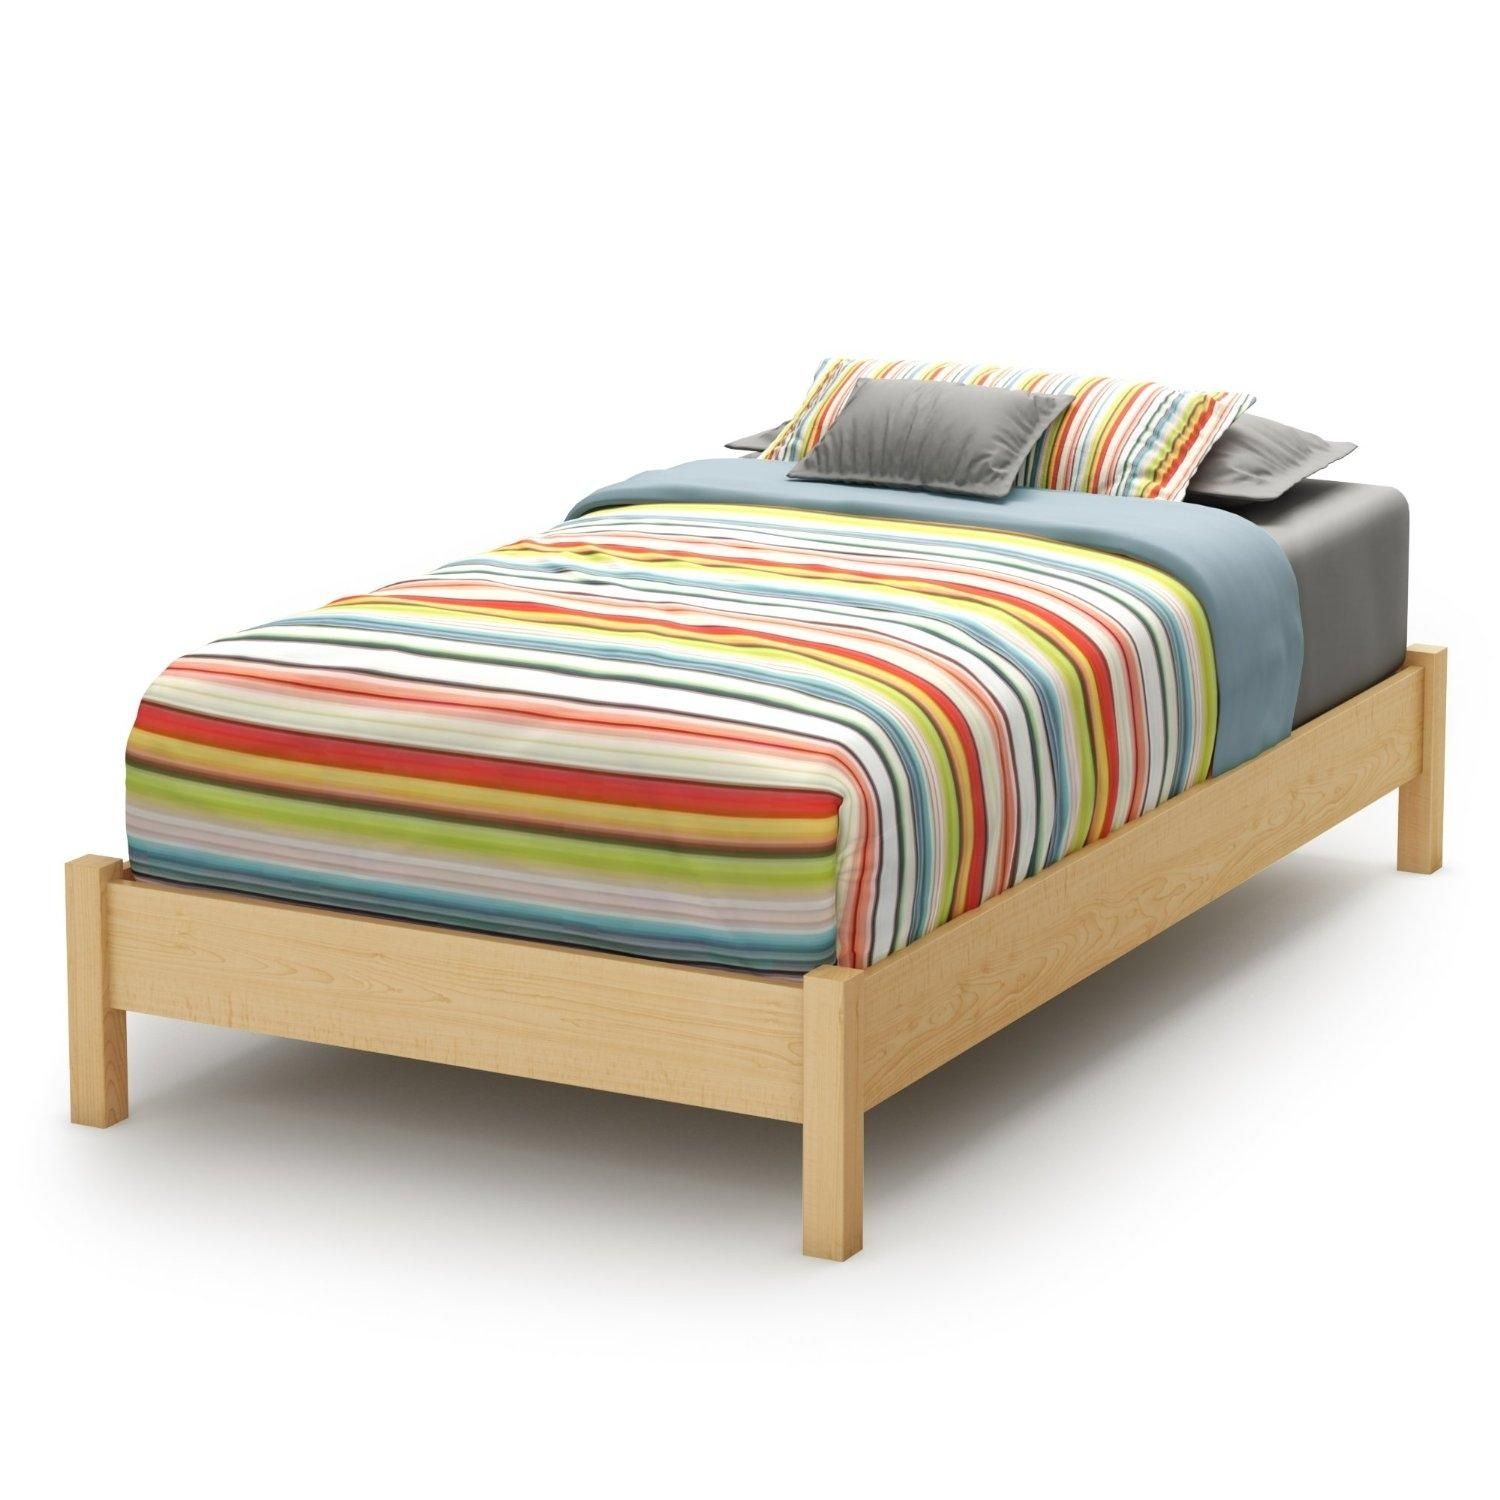 Wood Twin Bed Frames